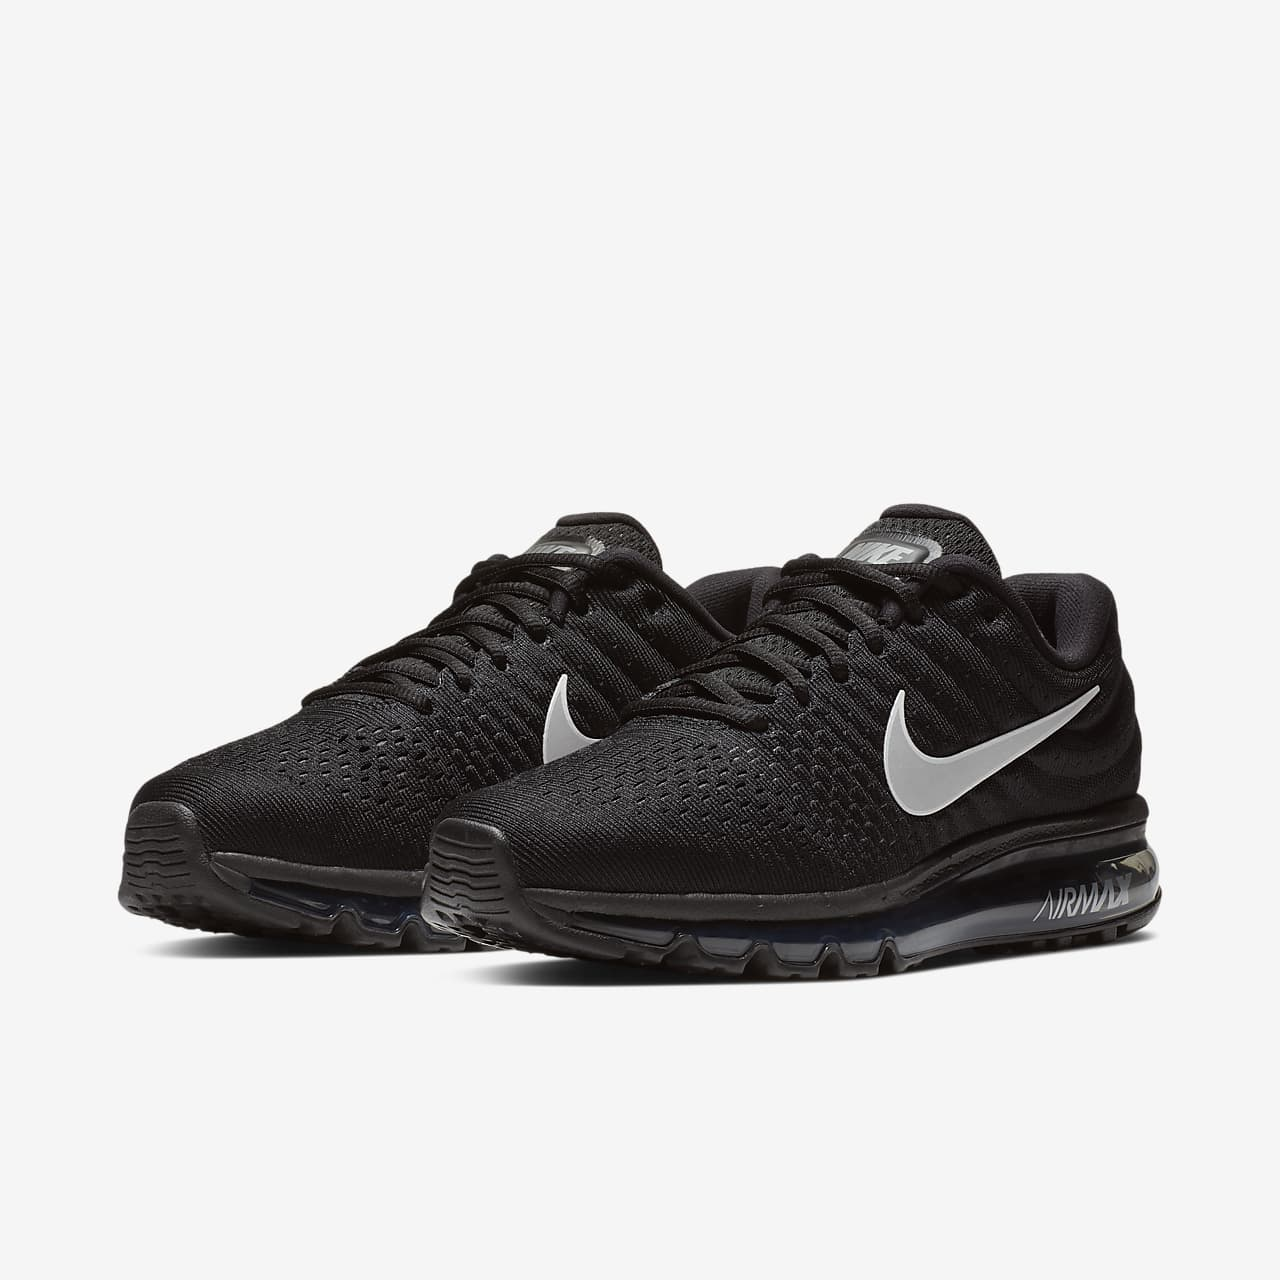 nike air max running shoes black